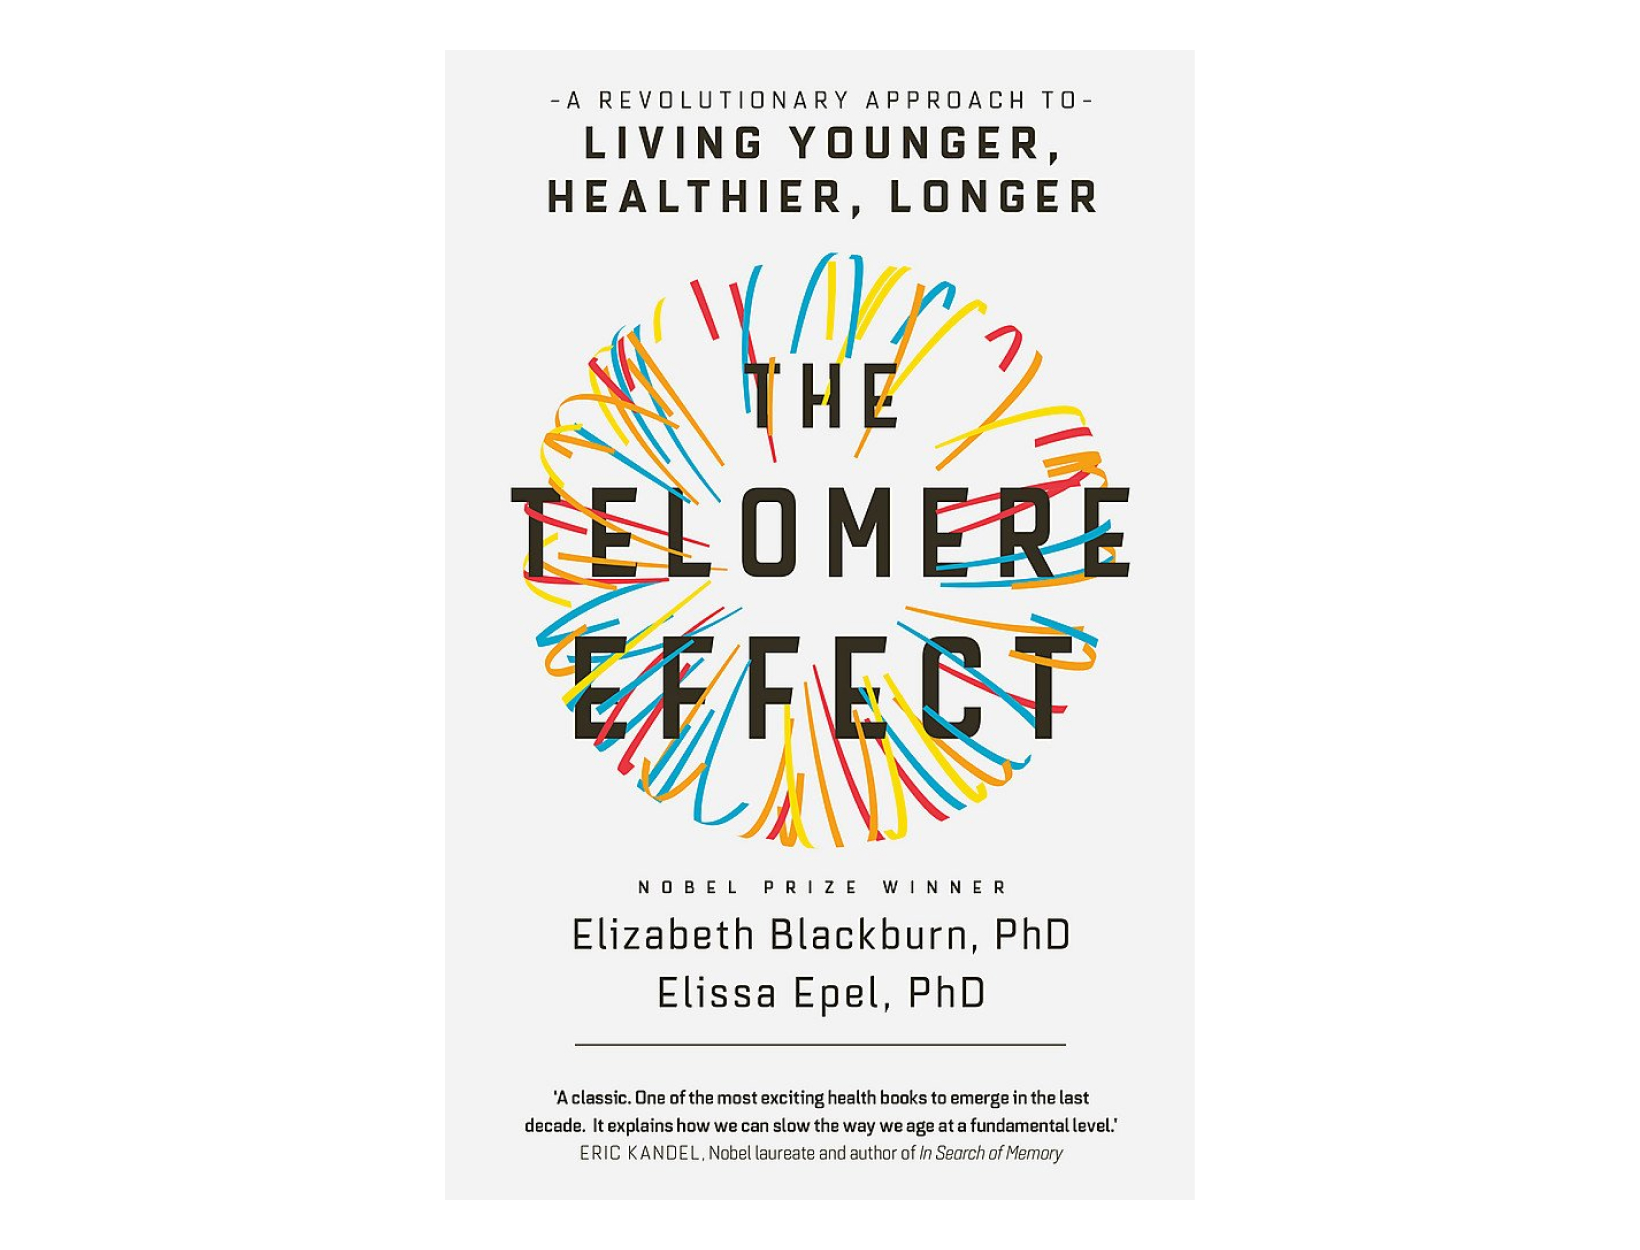 <em>Elizabeth Blackburn, PhD ve Elissa Epel, PhD